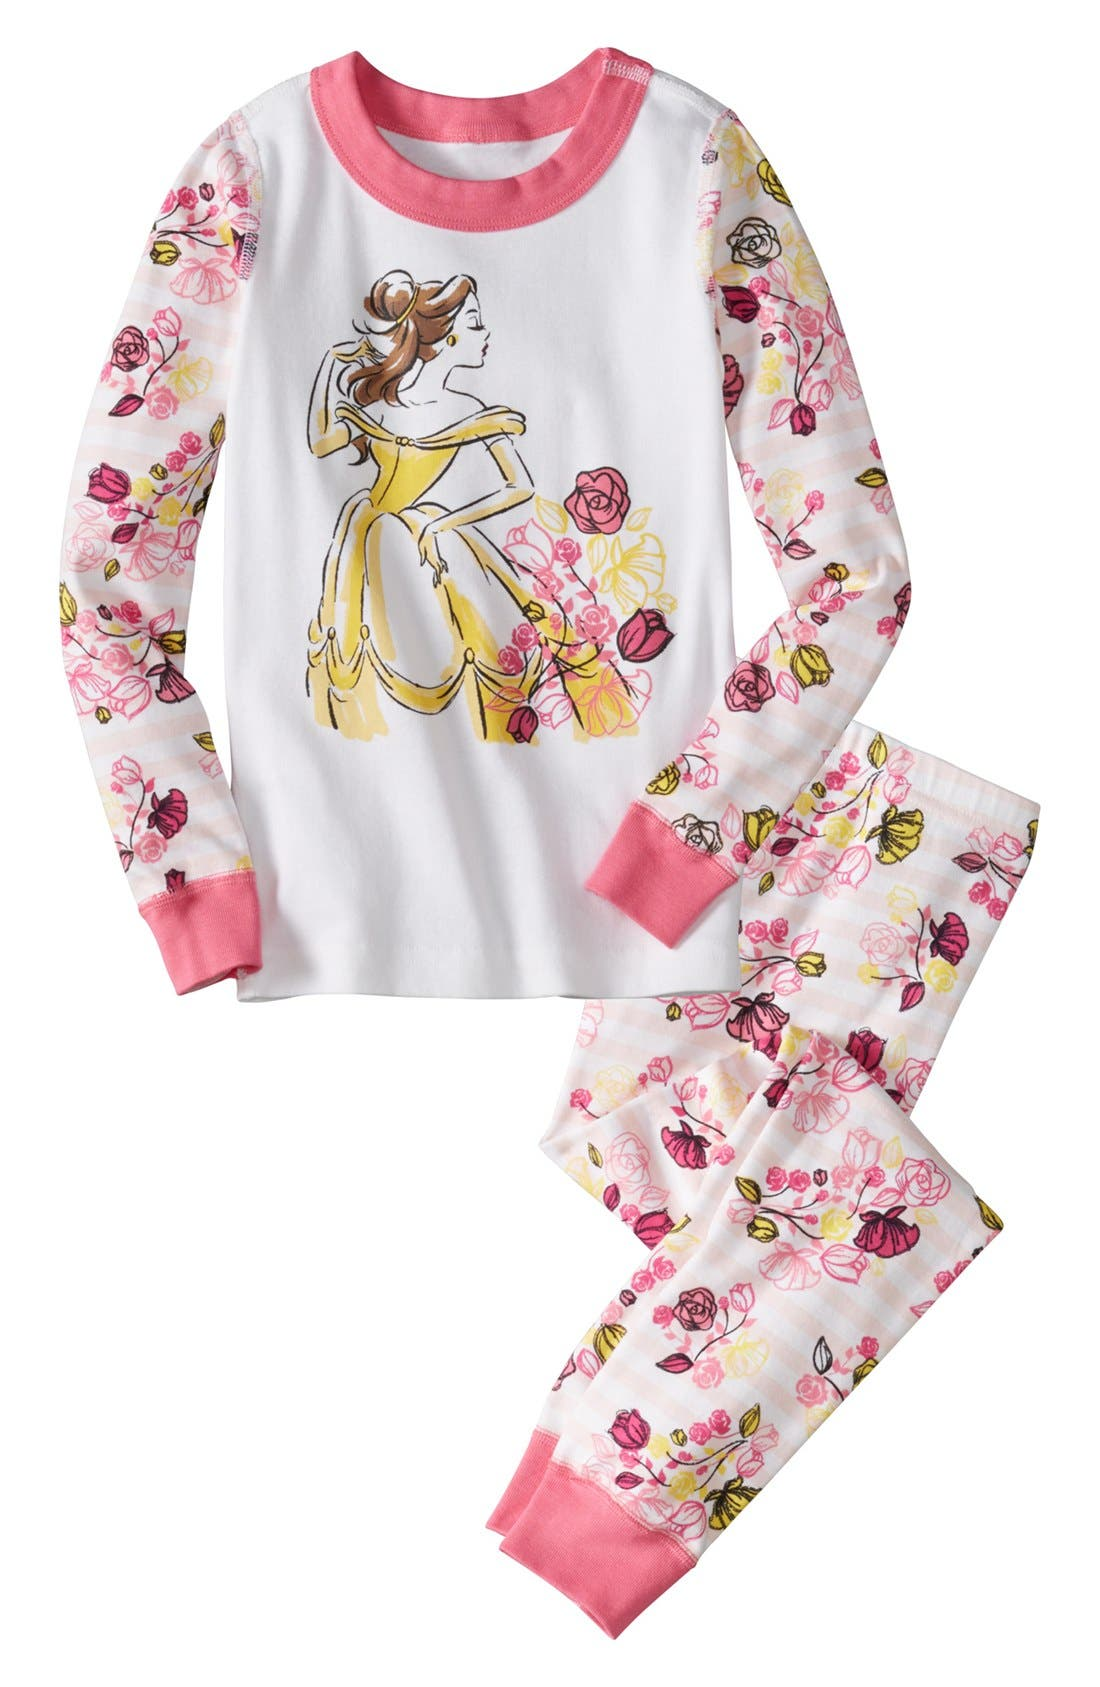 Alternate Image 1 Selected - Hanna Andersson 'Disney Princess - Belle' Two-Piece Fitted Pajamas (Toddler Girls)